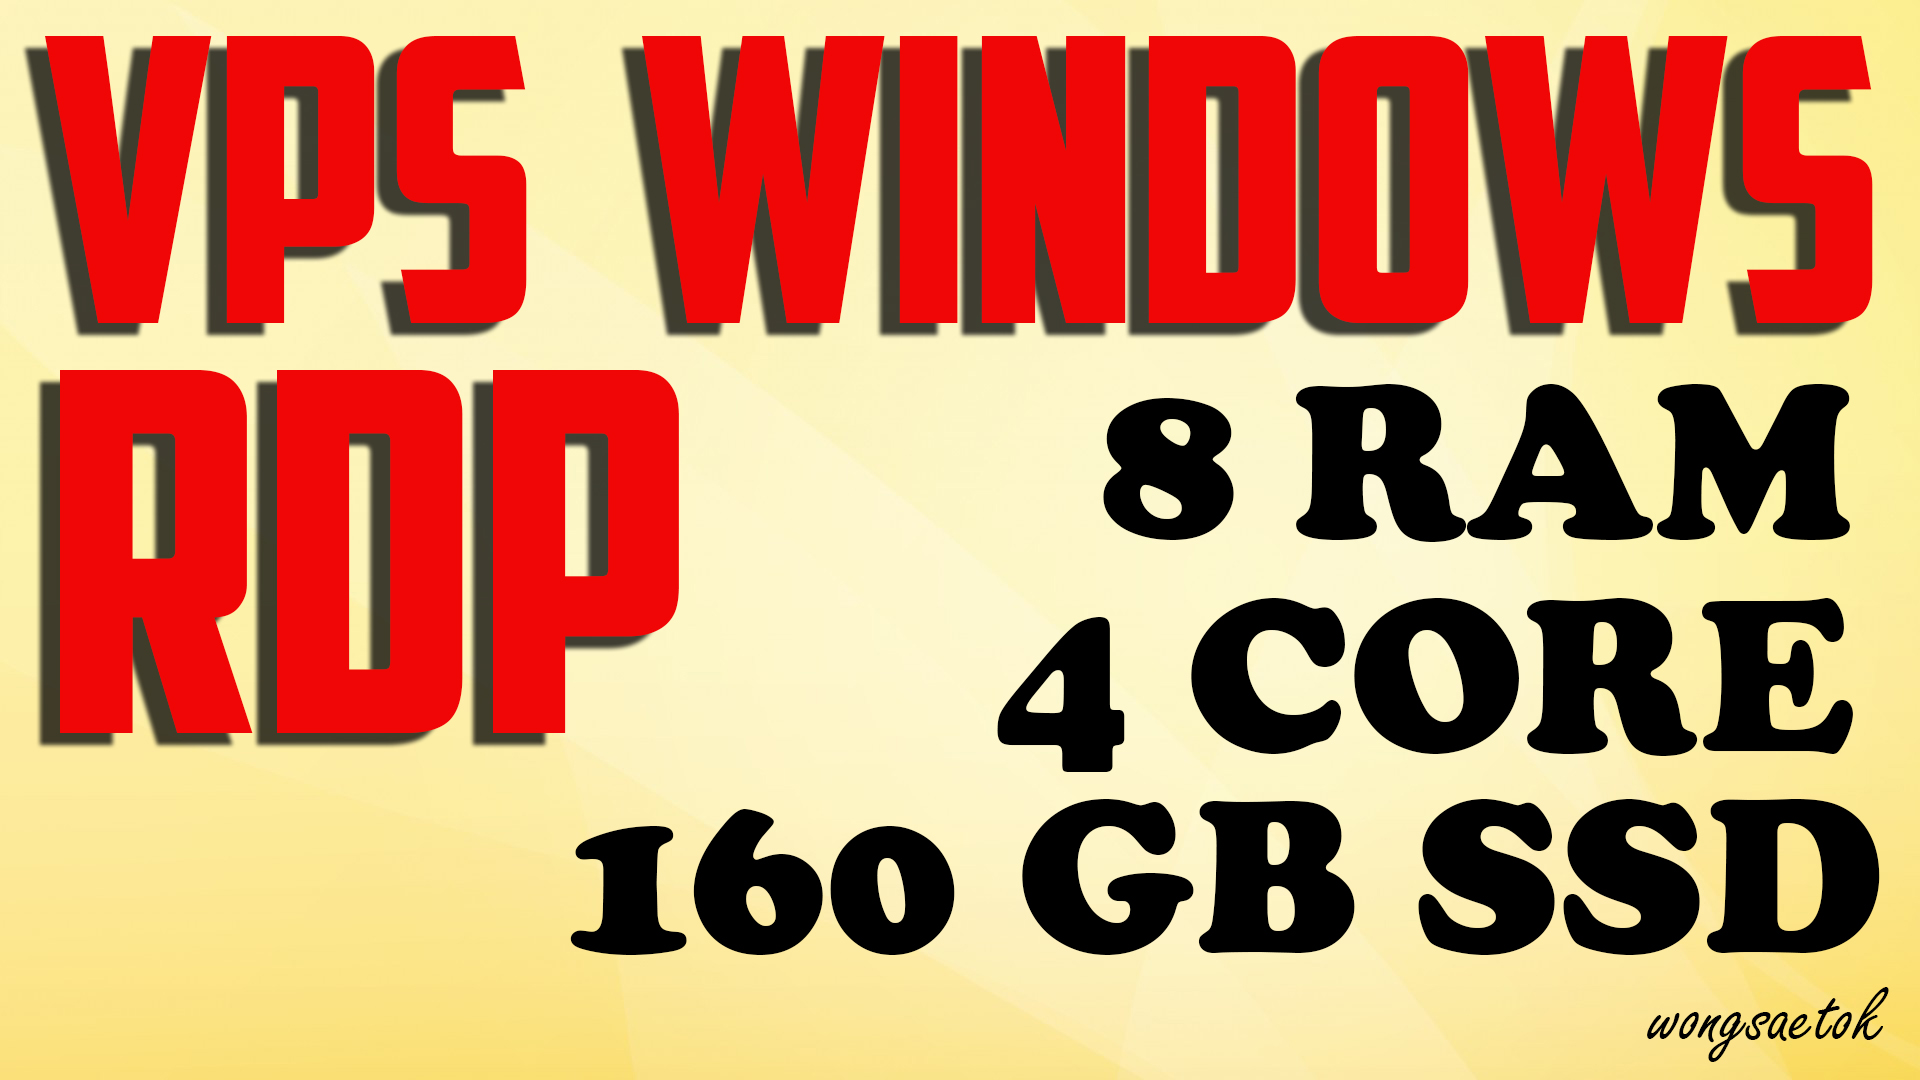 VPS RDP Windows 8 GB RAM 4 Core 160 GB SSD FOR SEO TO...